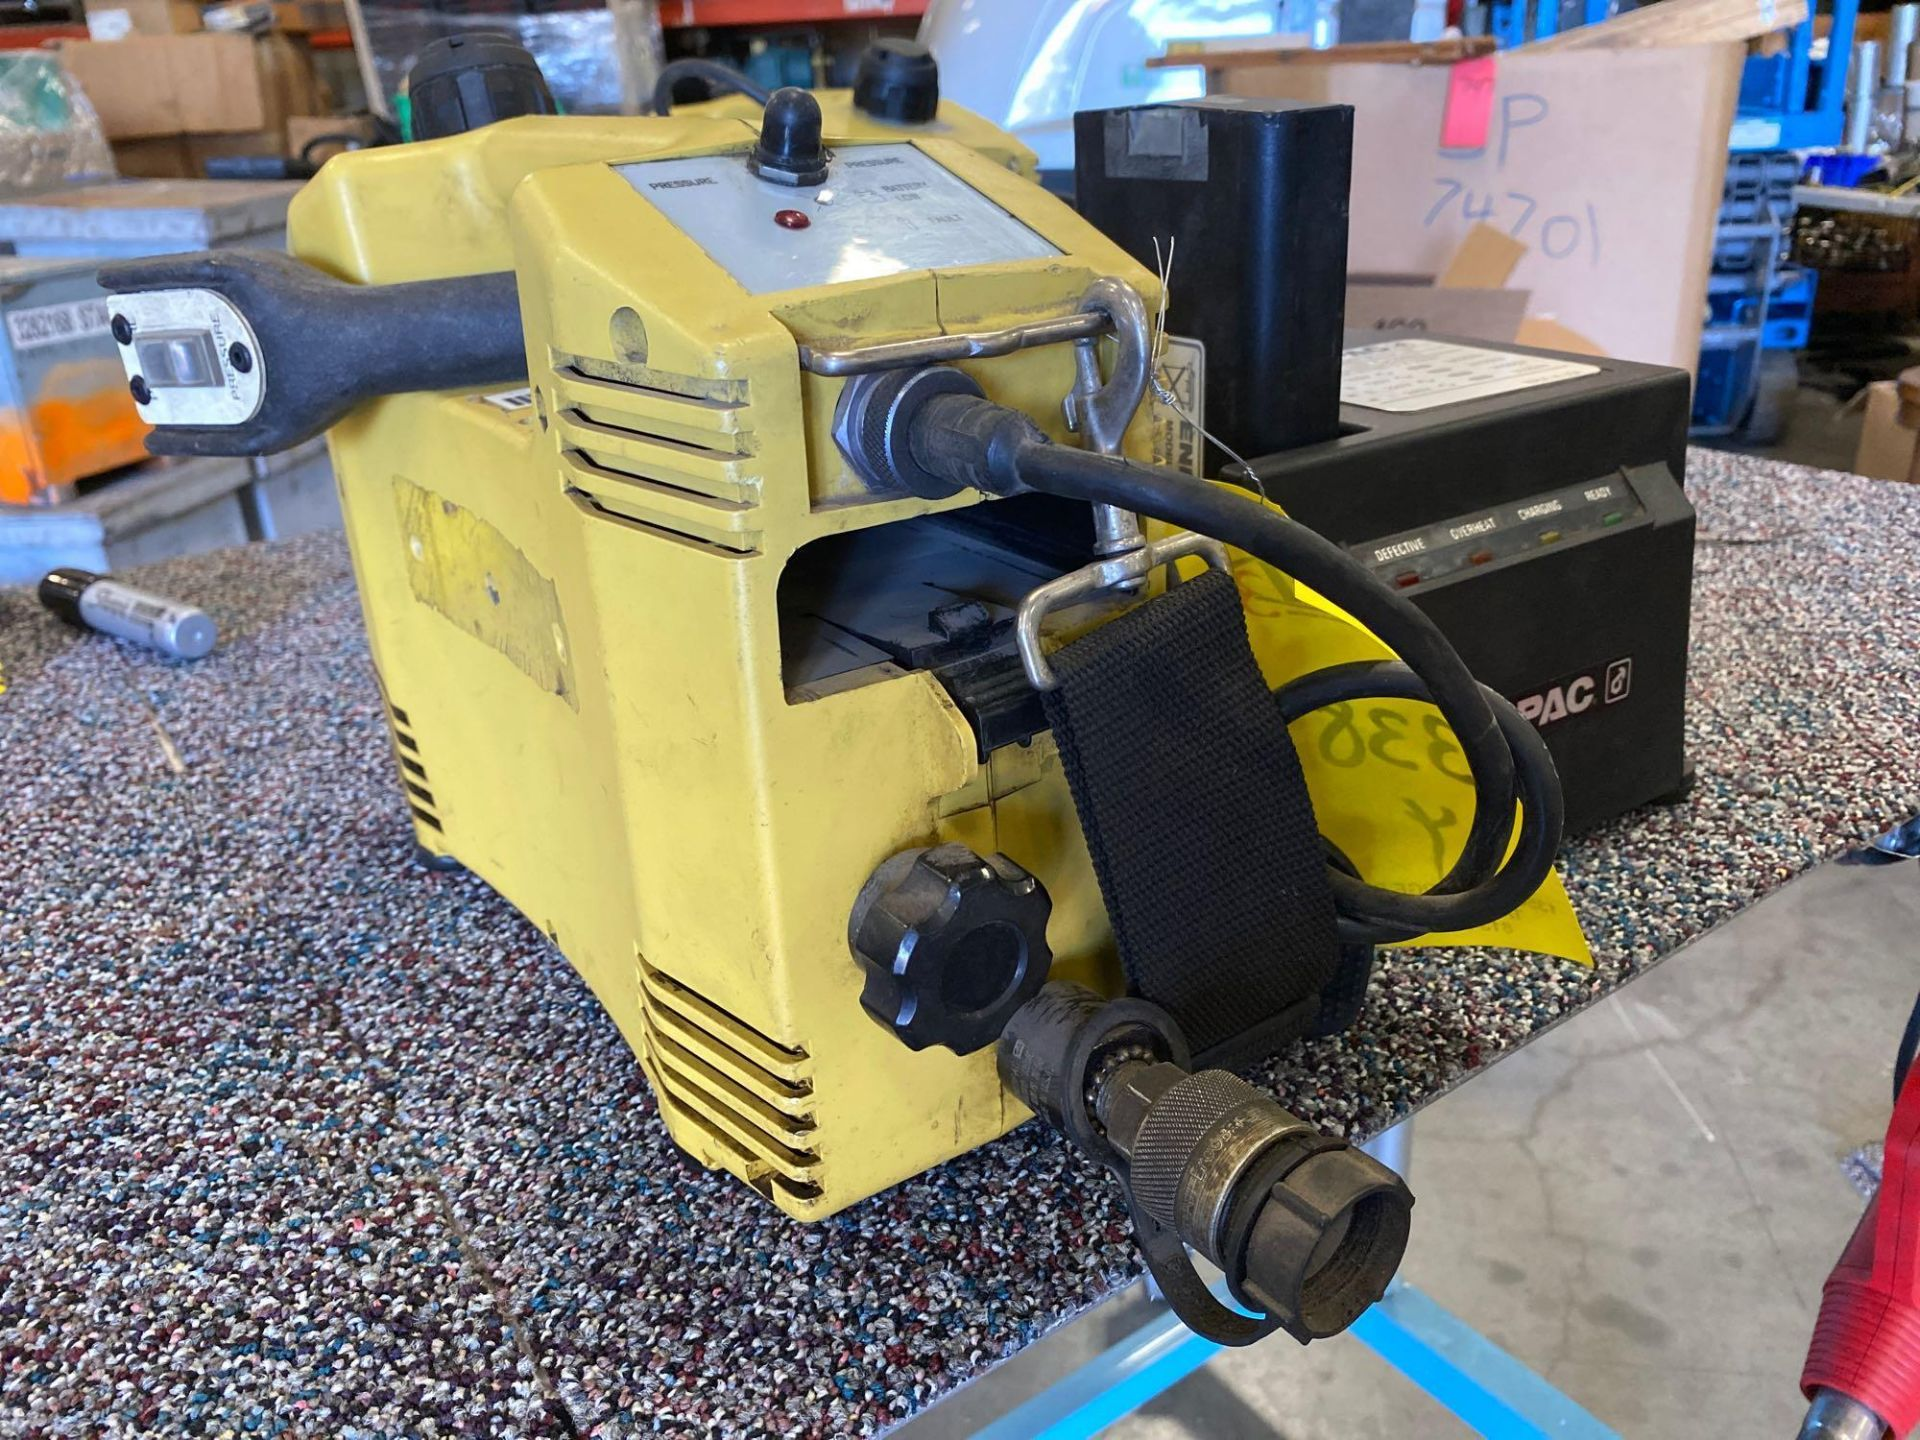 Lot 338 - ENERPAC PBR12001B HYDRAULIC PUMP AND BATTERY CHARGER